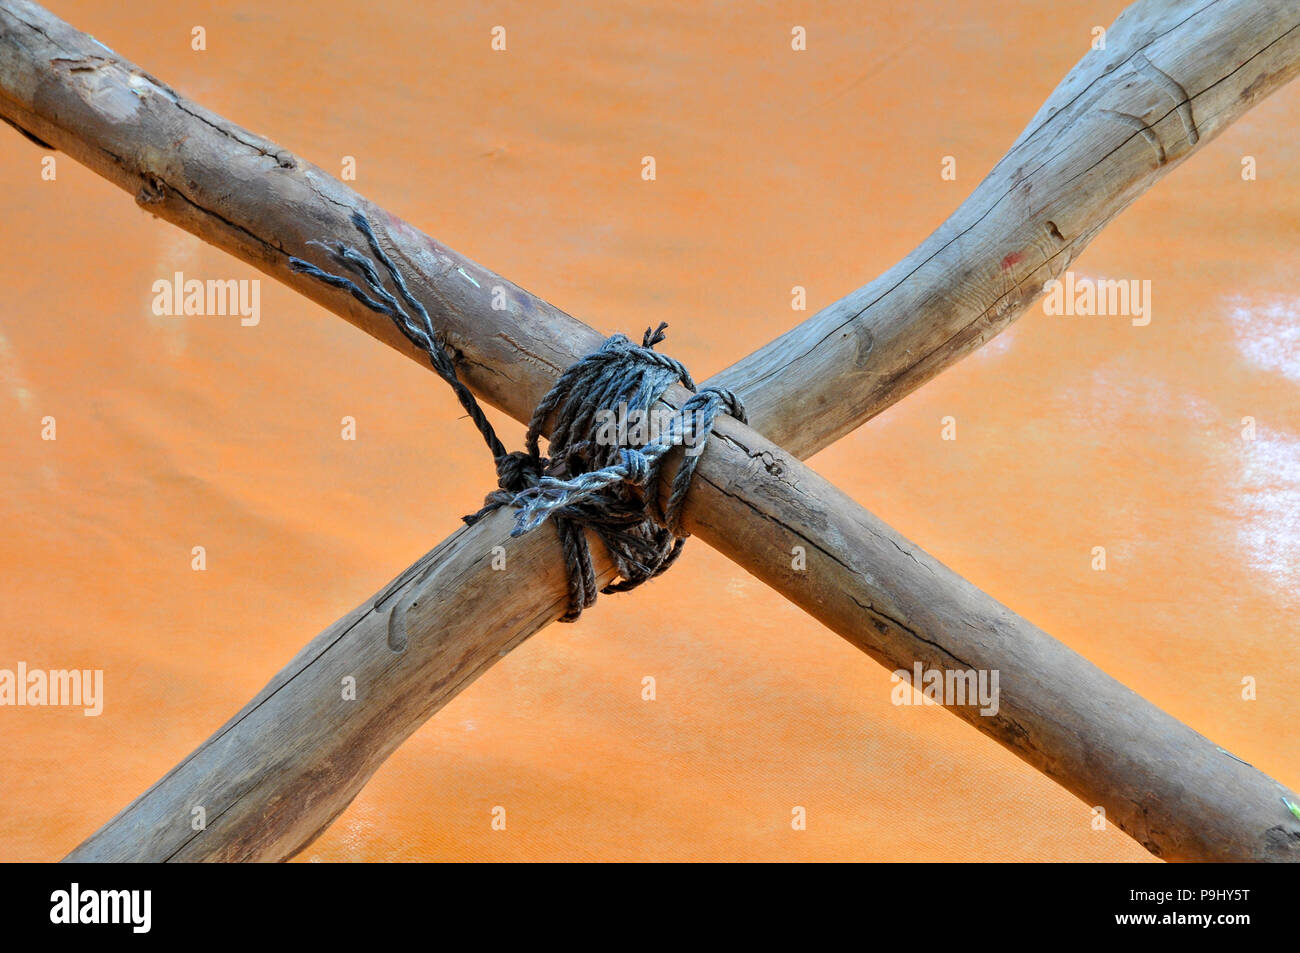 Square binding knot with black nylon rope - Stock Image